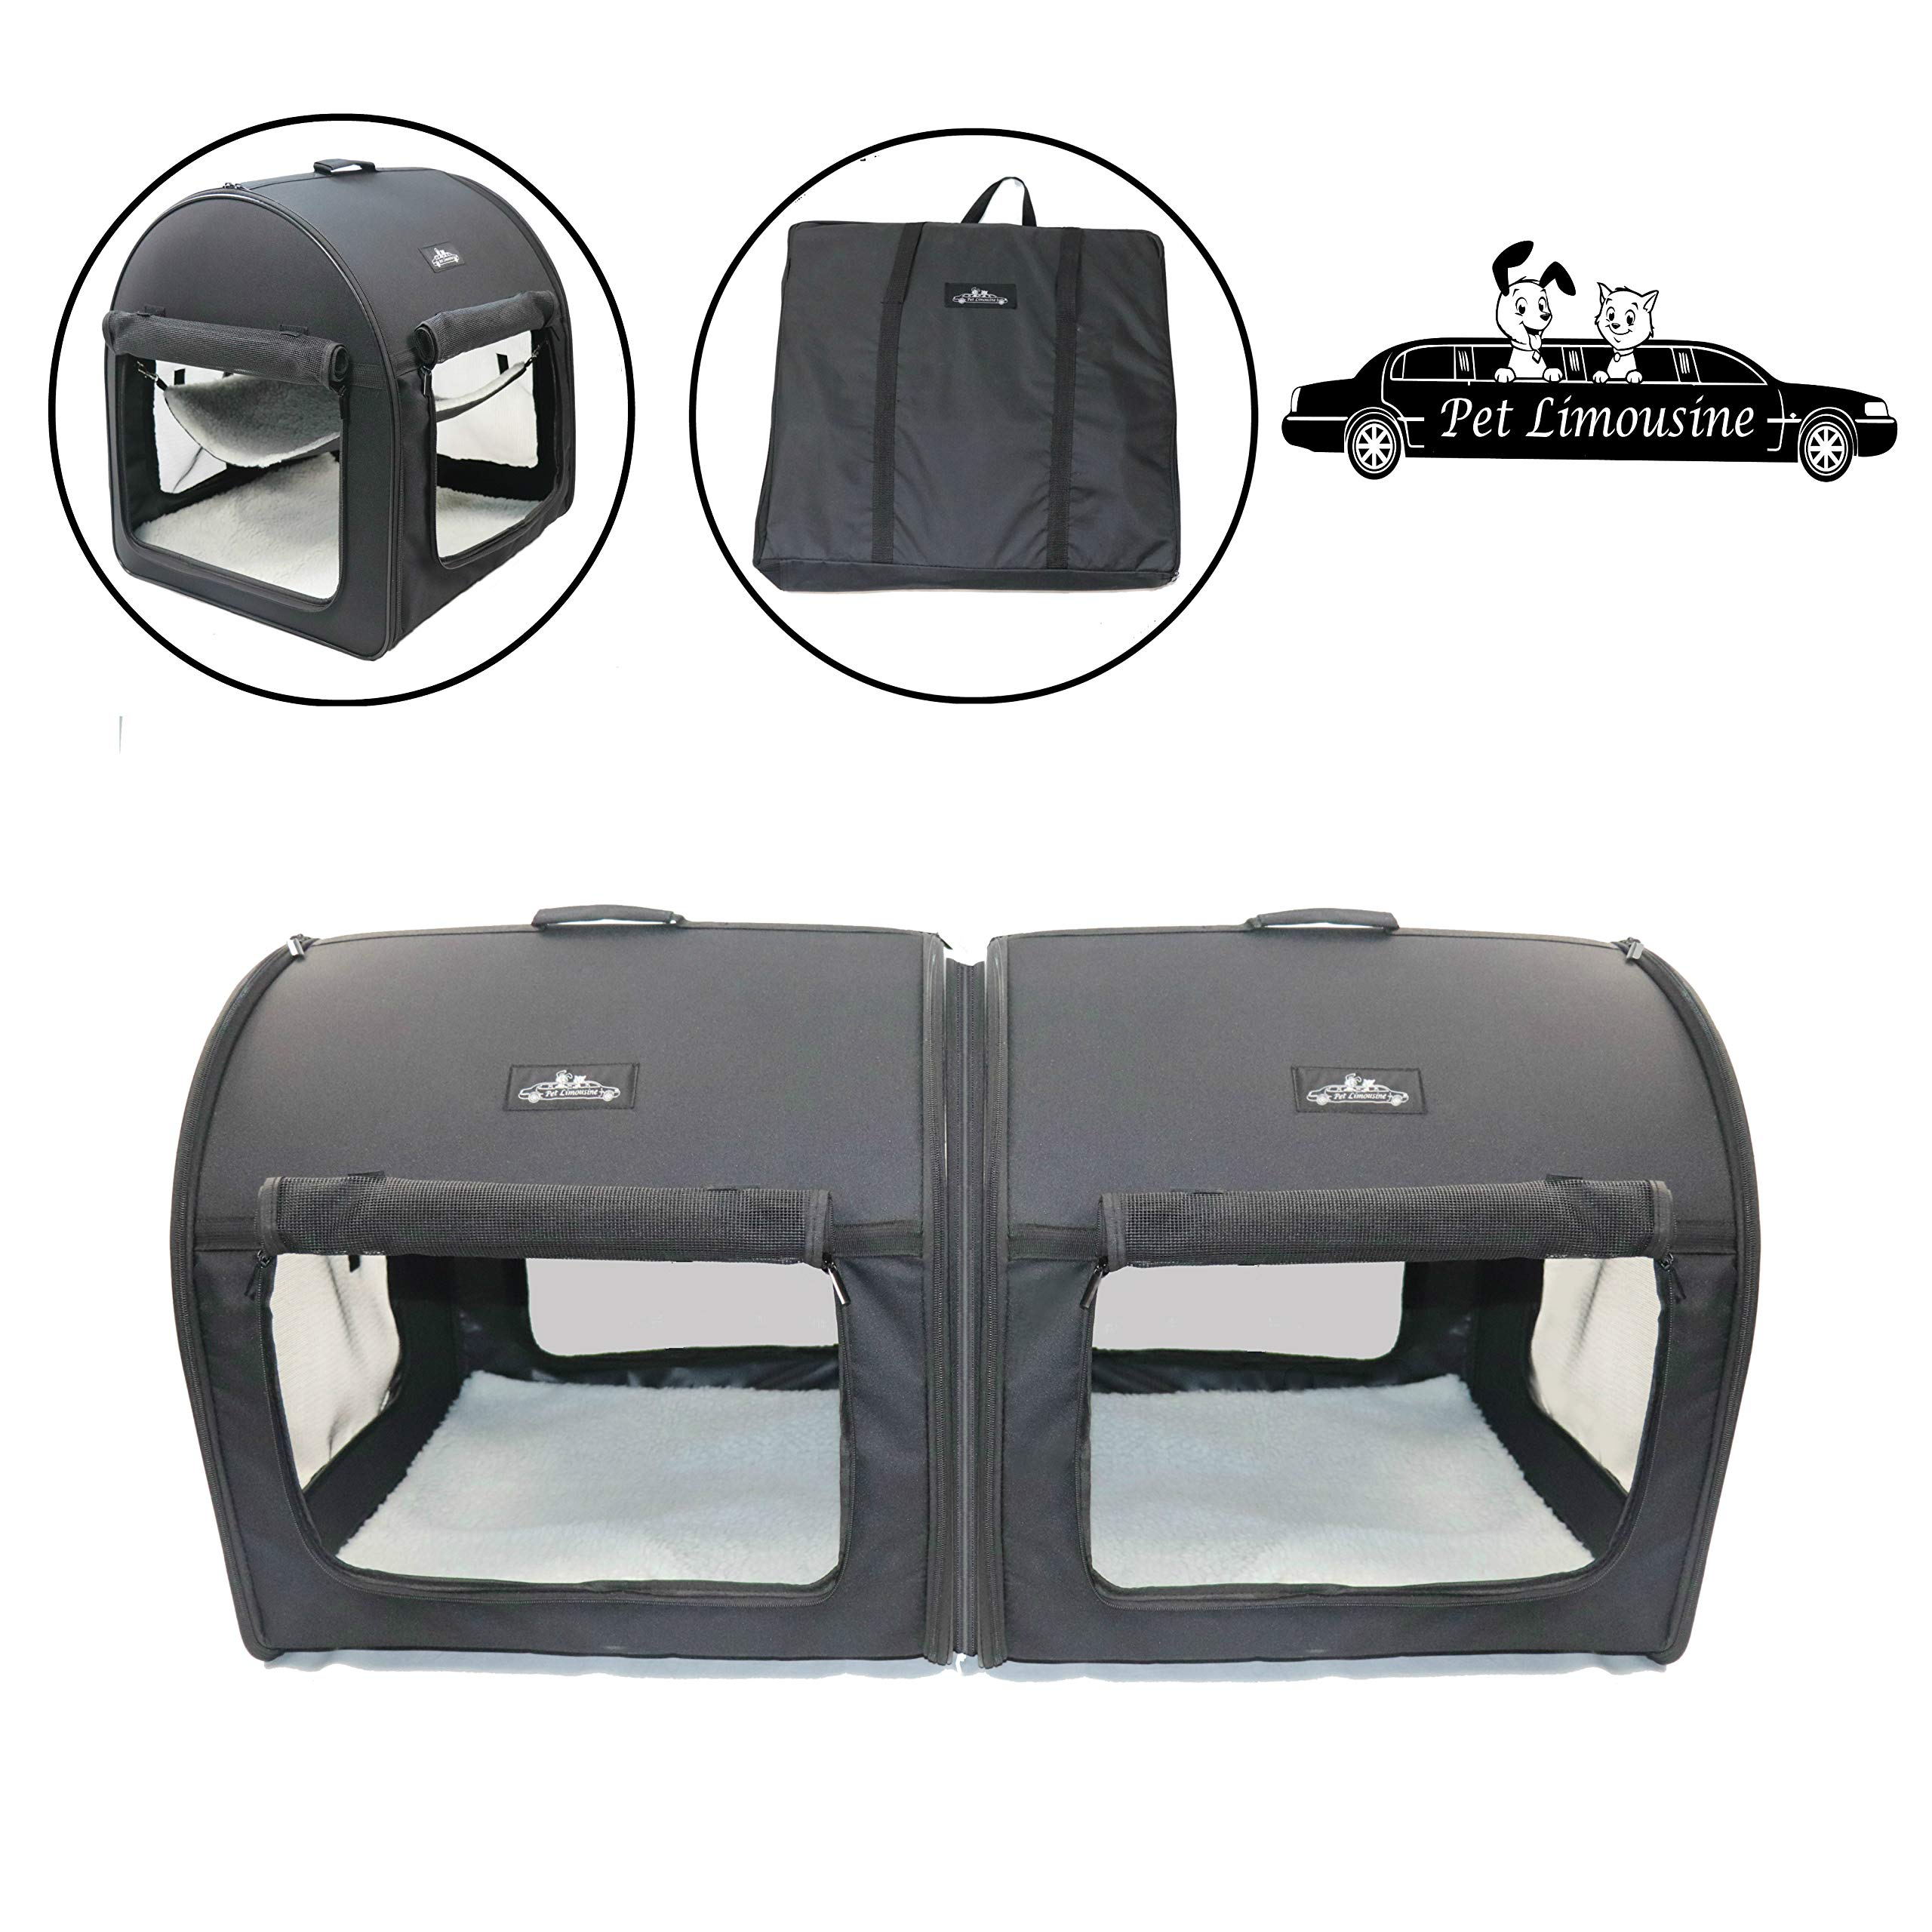 Double Pet Crate Soft and Portable Kennel Carrier The Dog and Cat Travel Tube by Pet Limousine